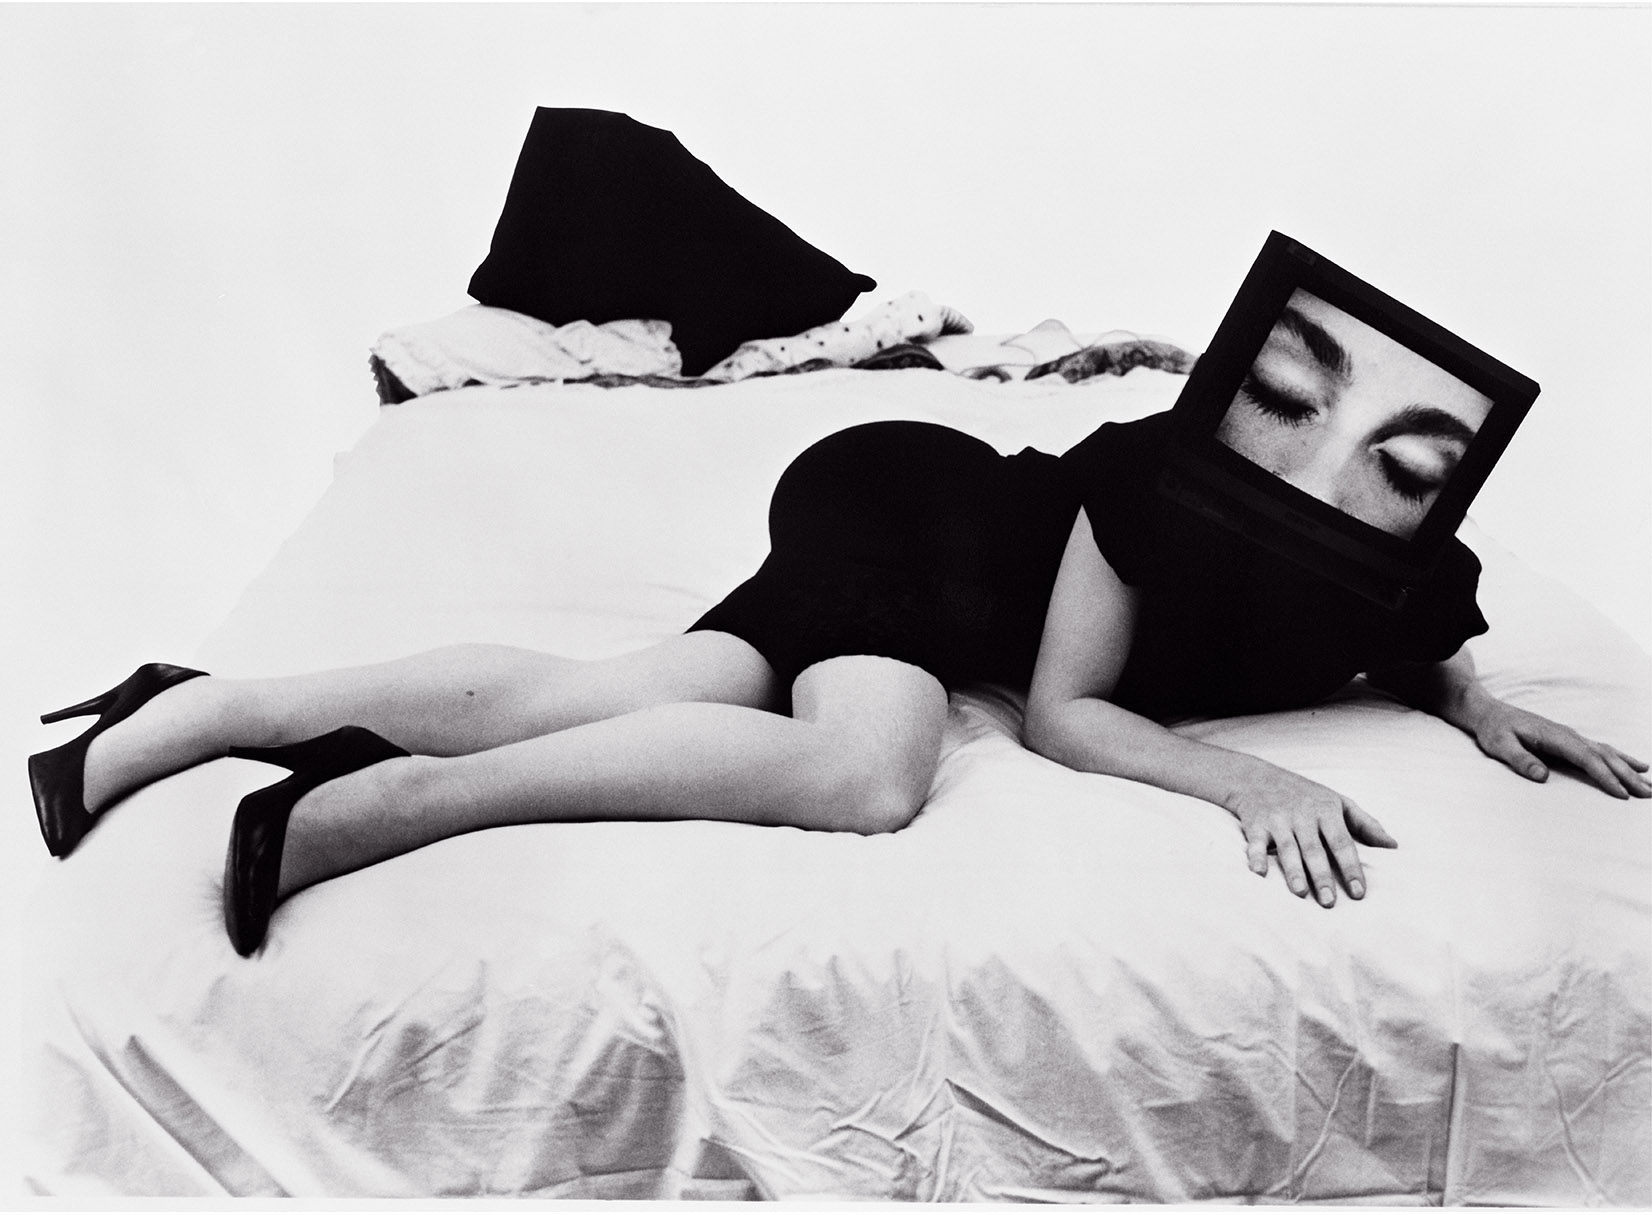 Lynn Hershman Leeson, Seduction, 1985, Image copyright Lynn Hershman Leeson, courtesy of the artist and Bridget Donahue, NYC